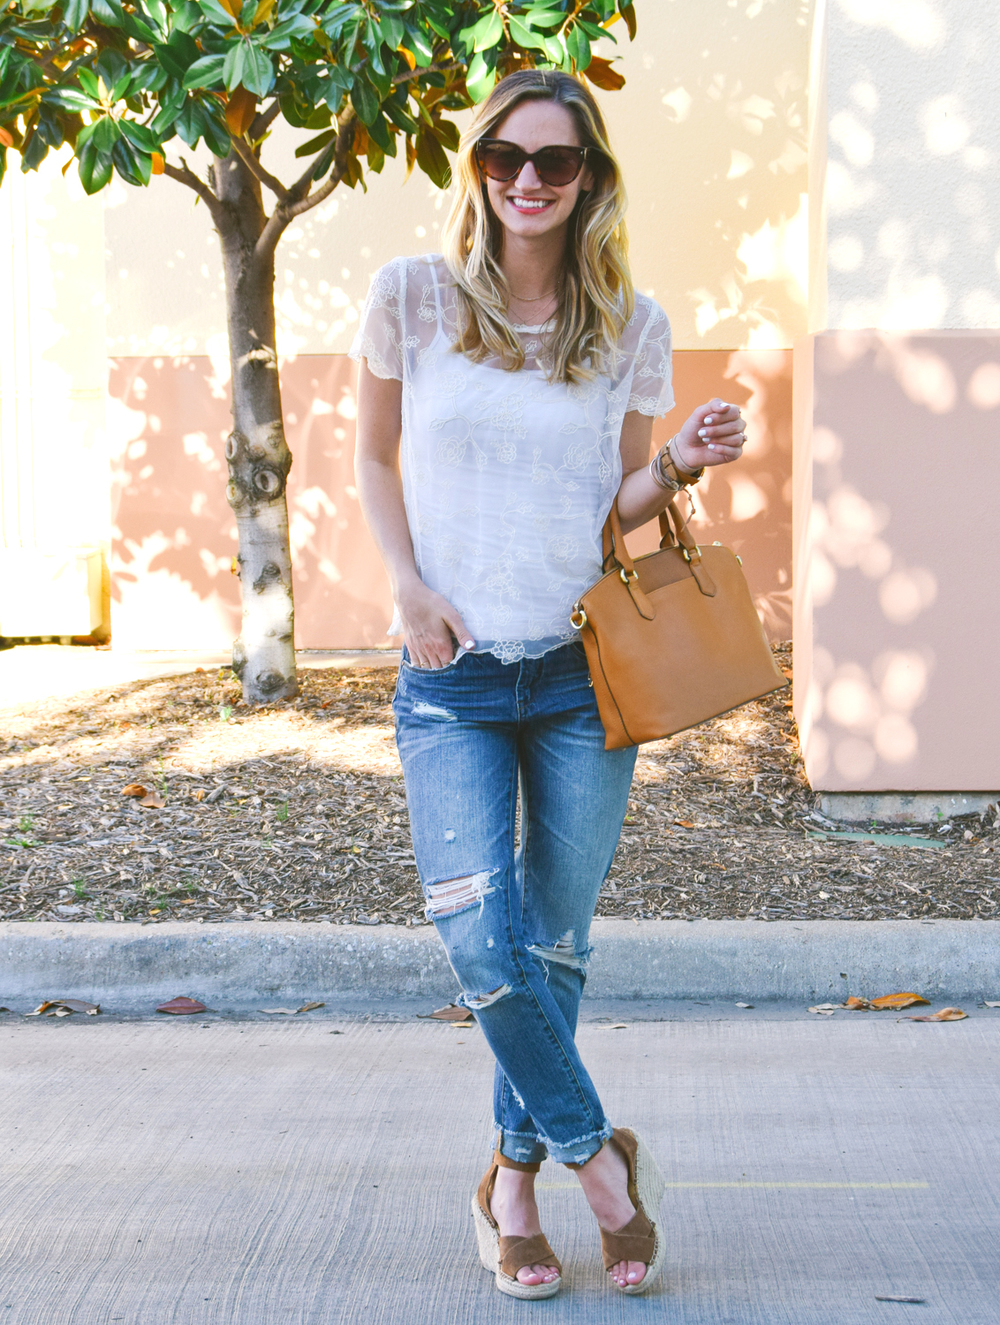 livvyland-blog-olivia-watson-austin-texas-fashion-blogger-hinge-mesh-lace-embroidered-top-sheer-distressed-boyfriend-jeans-brahmin-duxbury-southcoast-collection-3.jpg